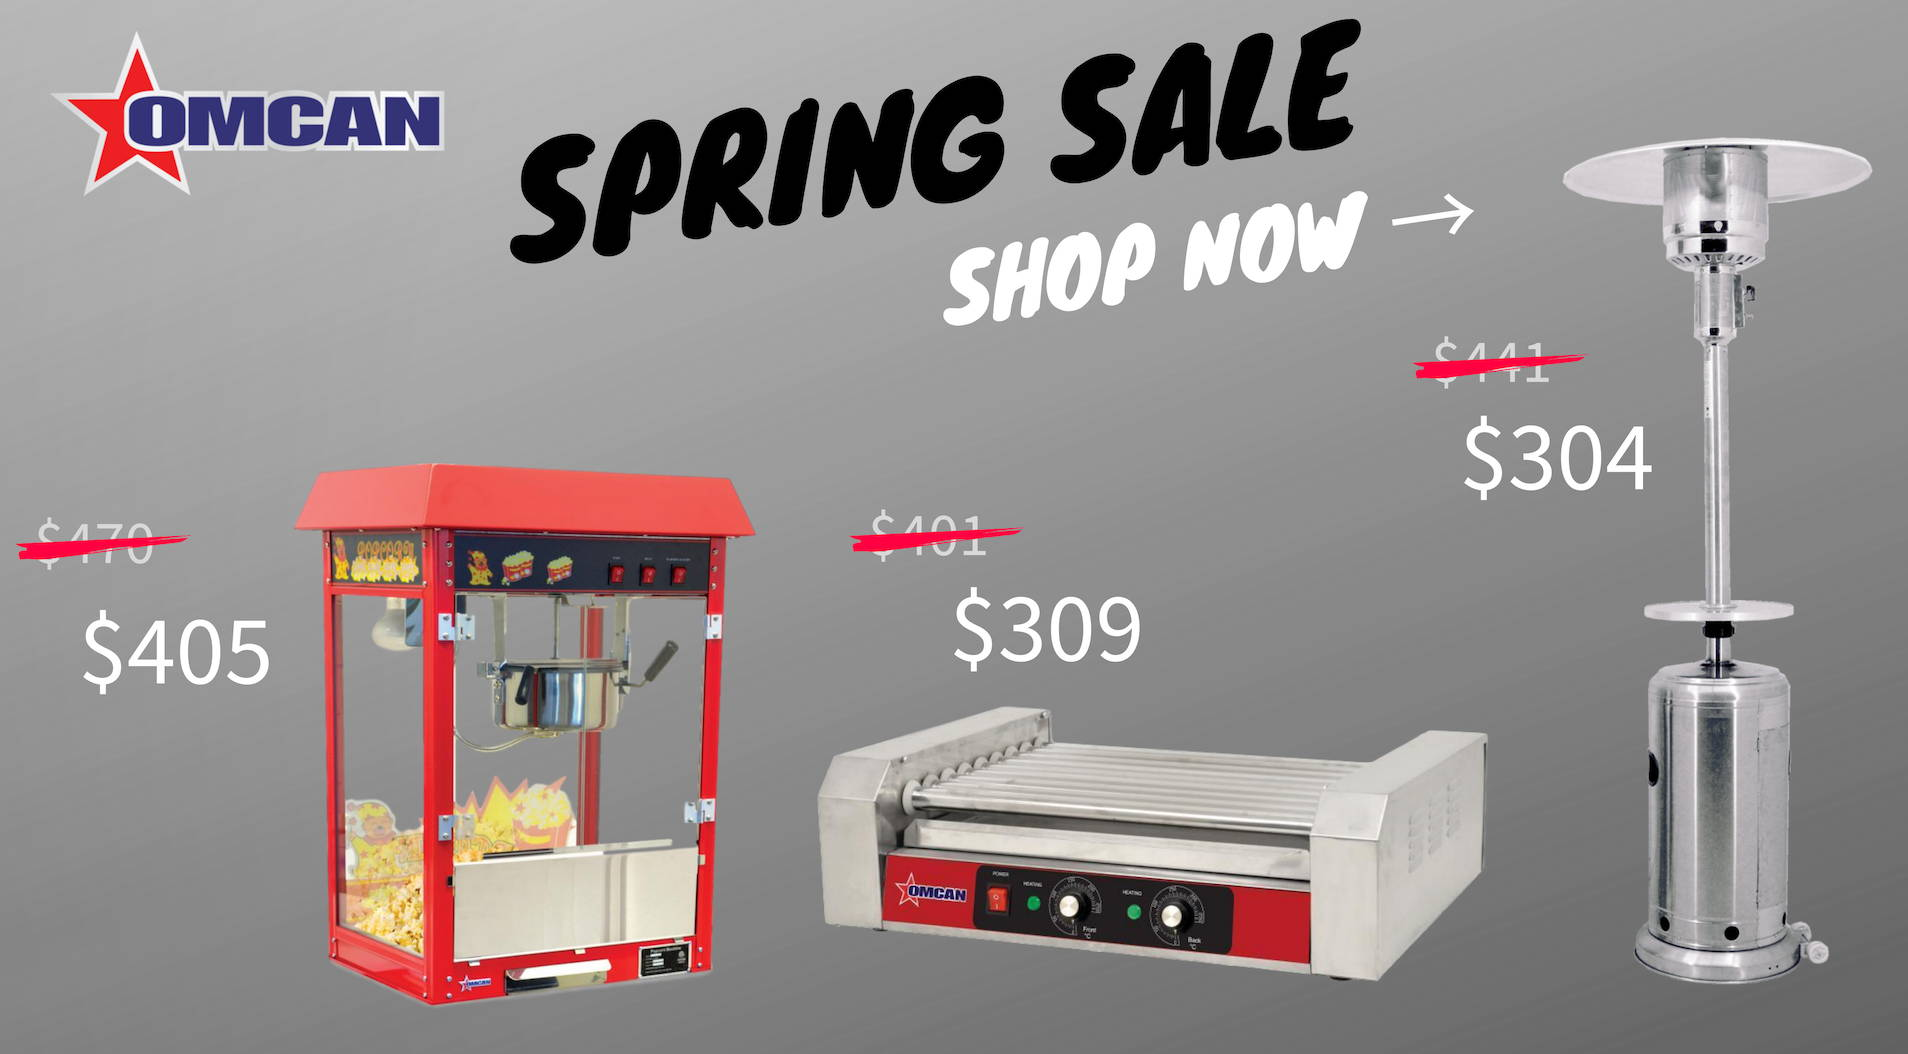 Omcan Spring Sale